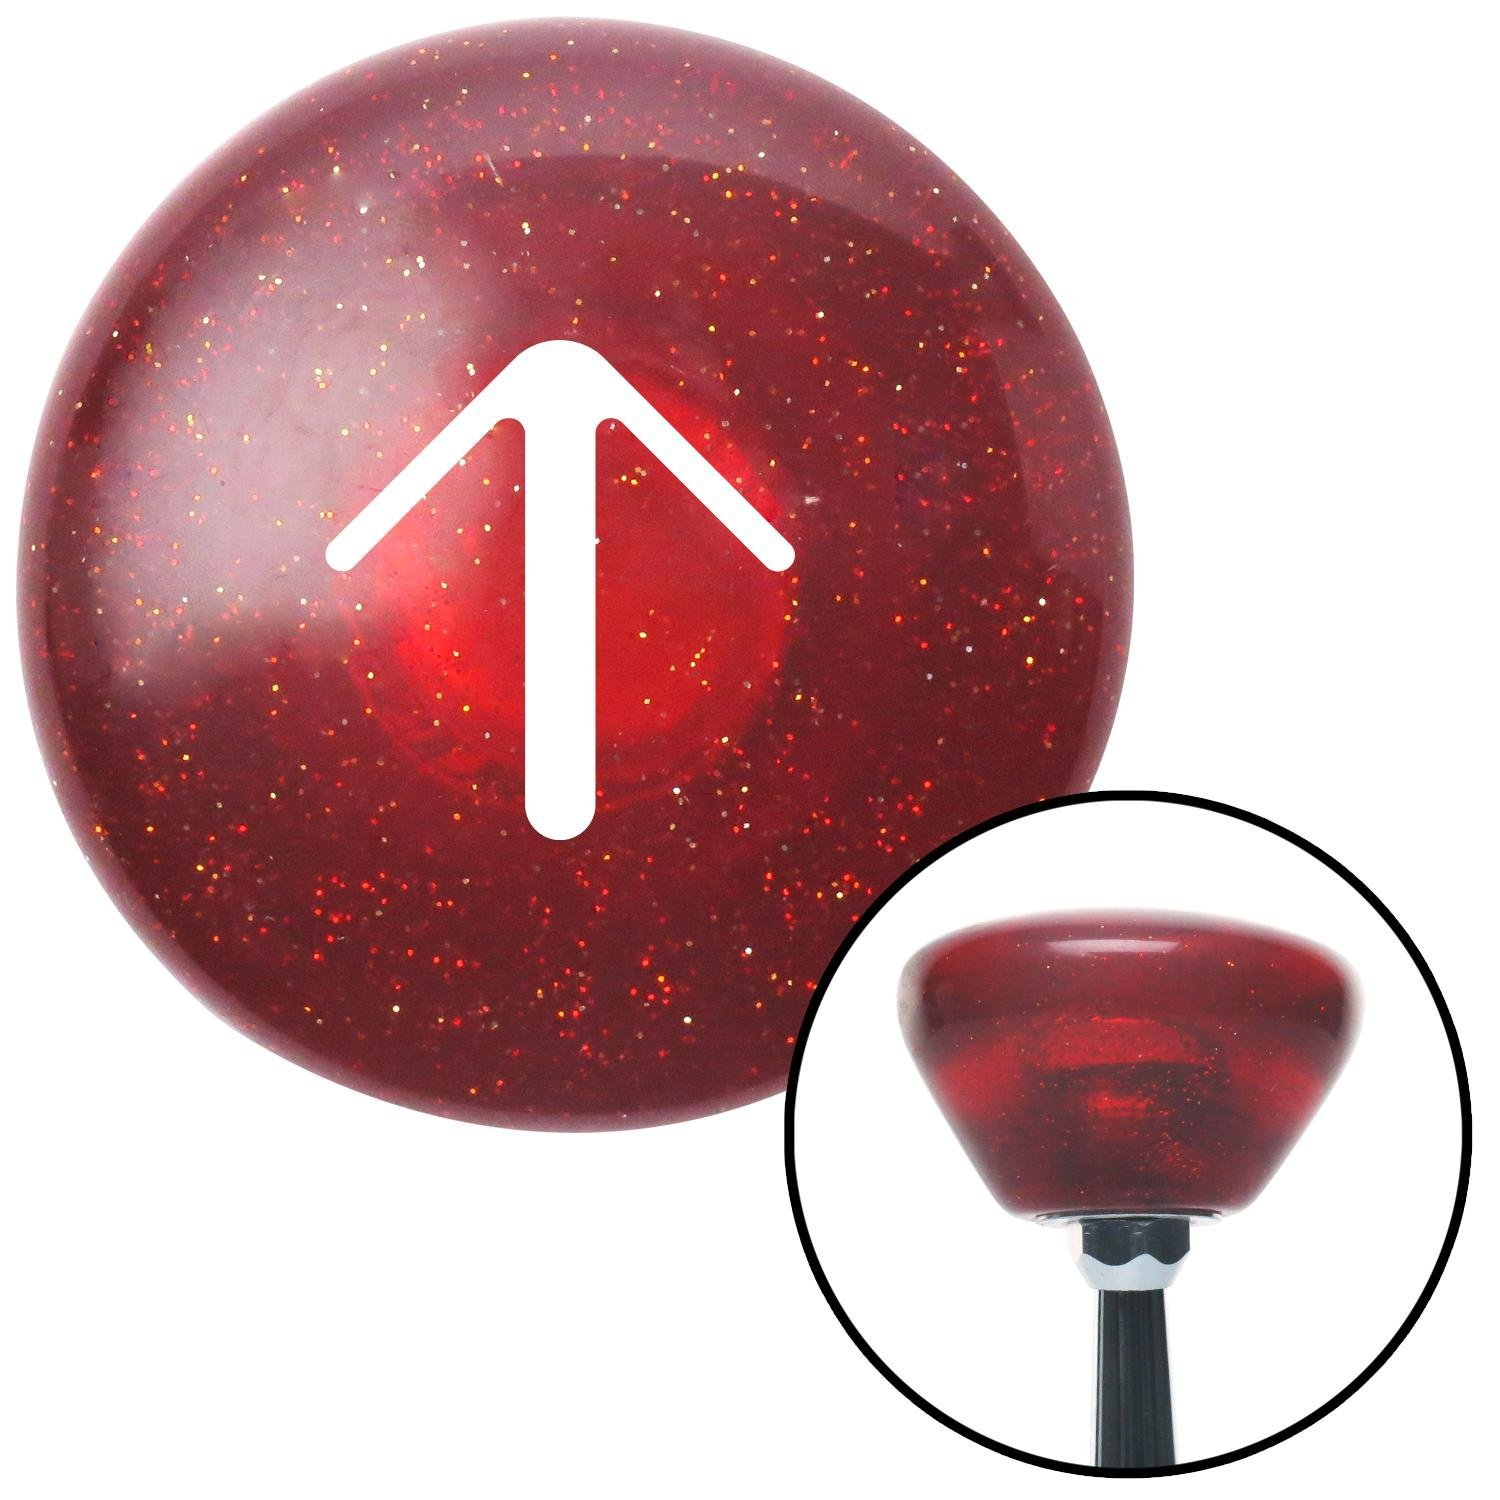 White Solid Pointing Arrow Up American Shifter 193474 Red Retro Metal Flake Shift Knob with M16 x 1.5 Insert